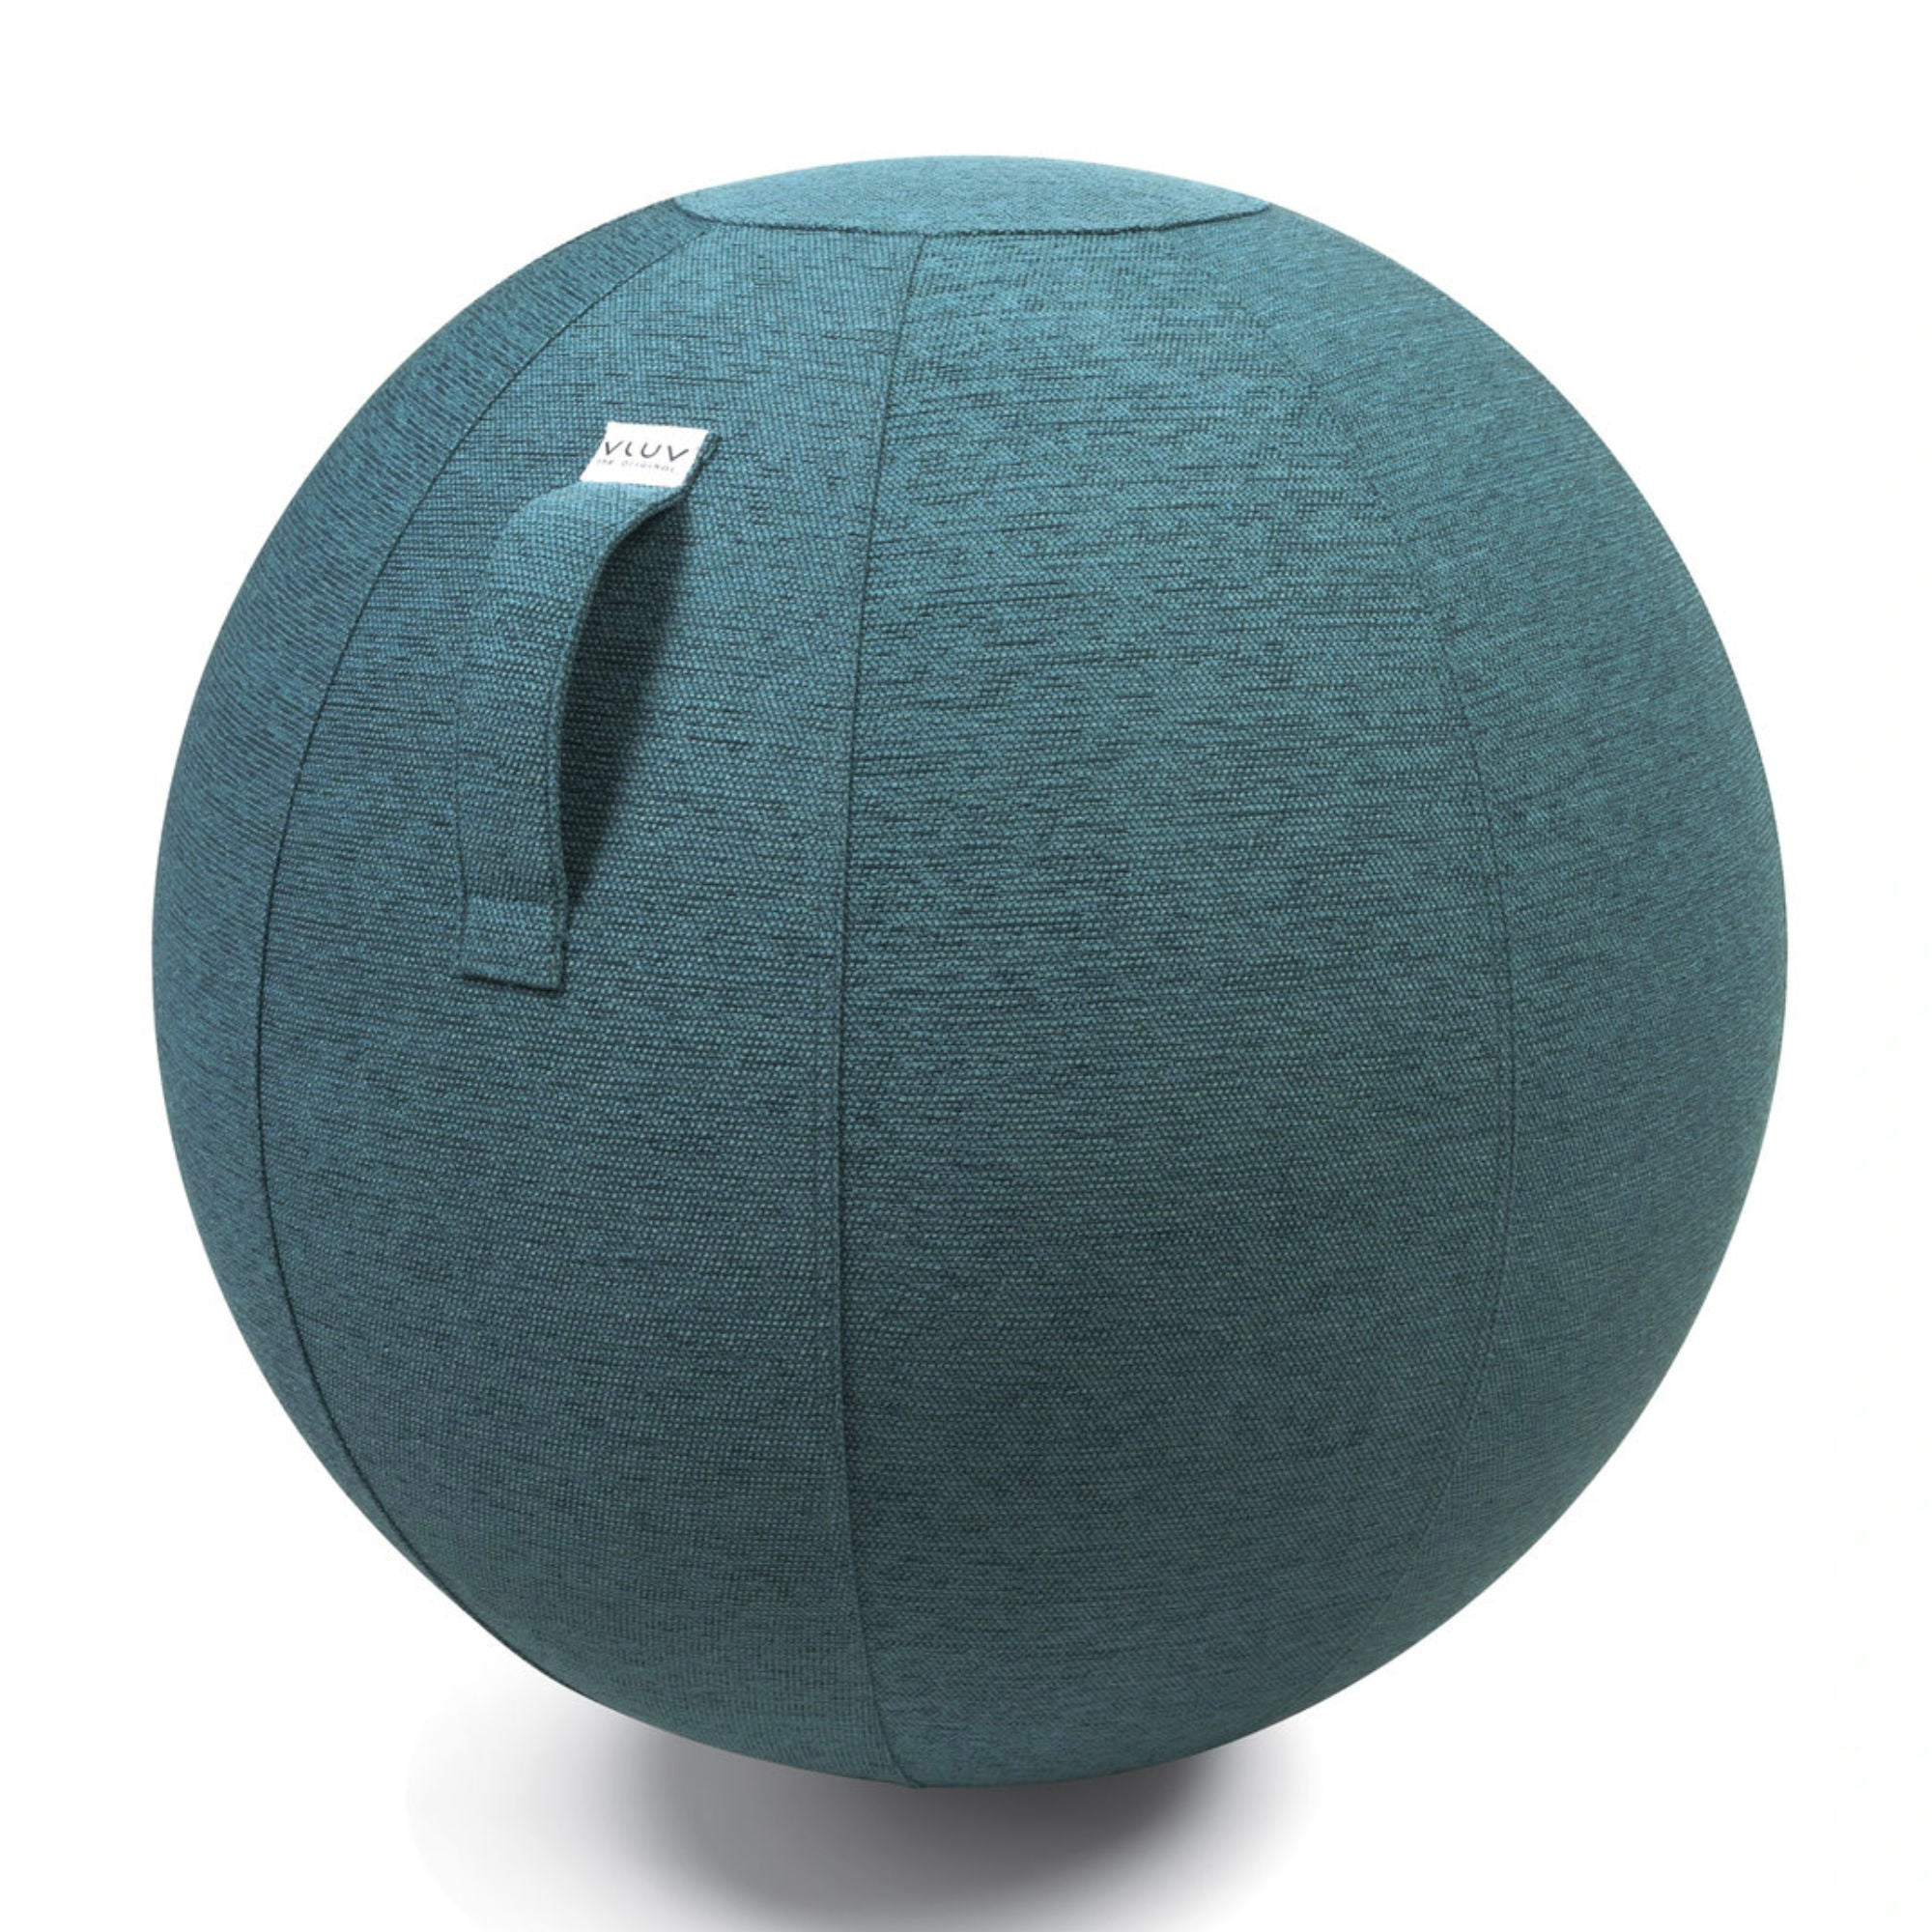 VLUV STOV active sitting & yoga ball Ø55cm, petrol